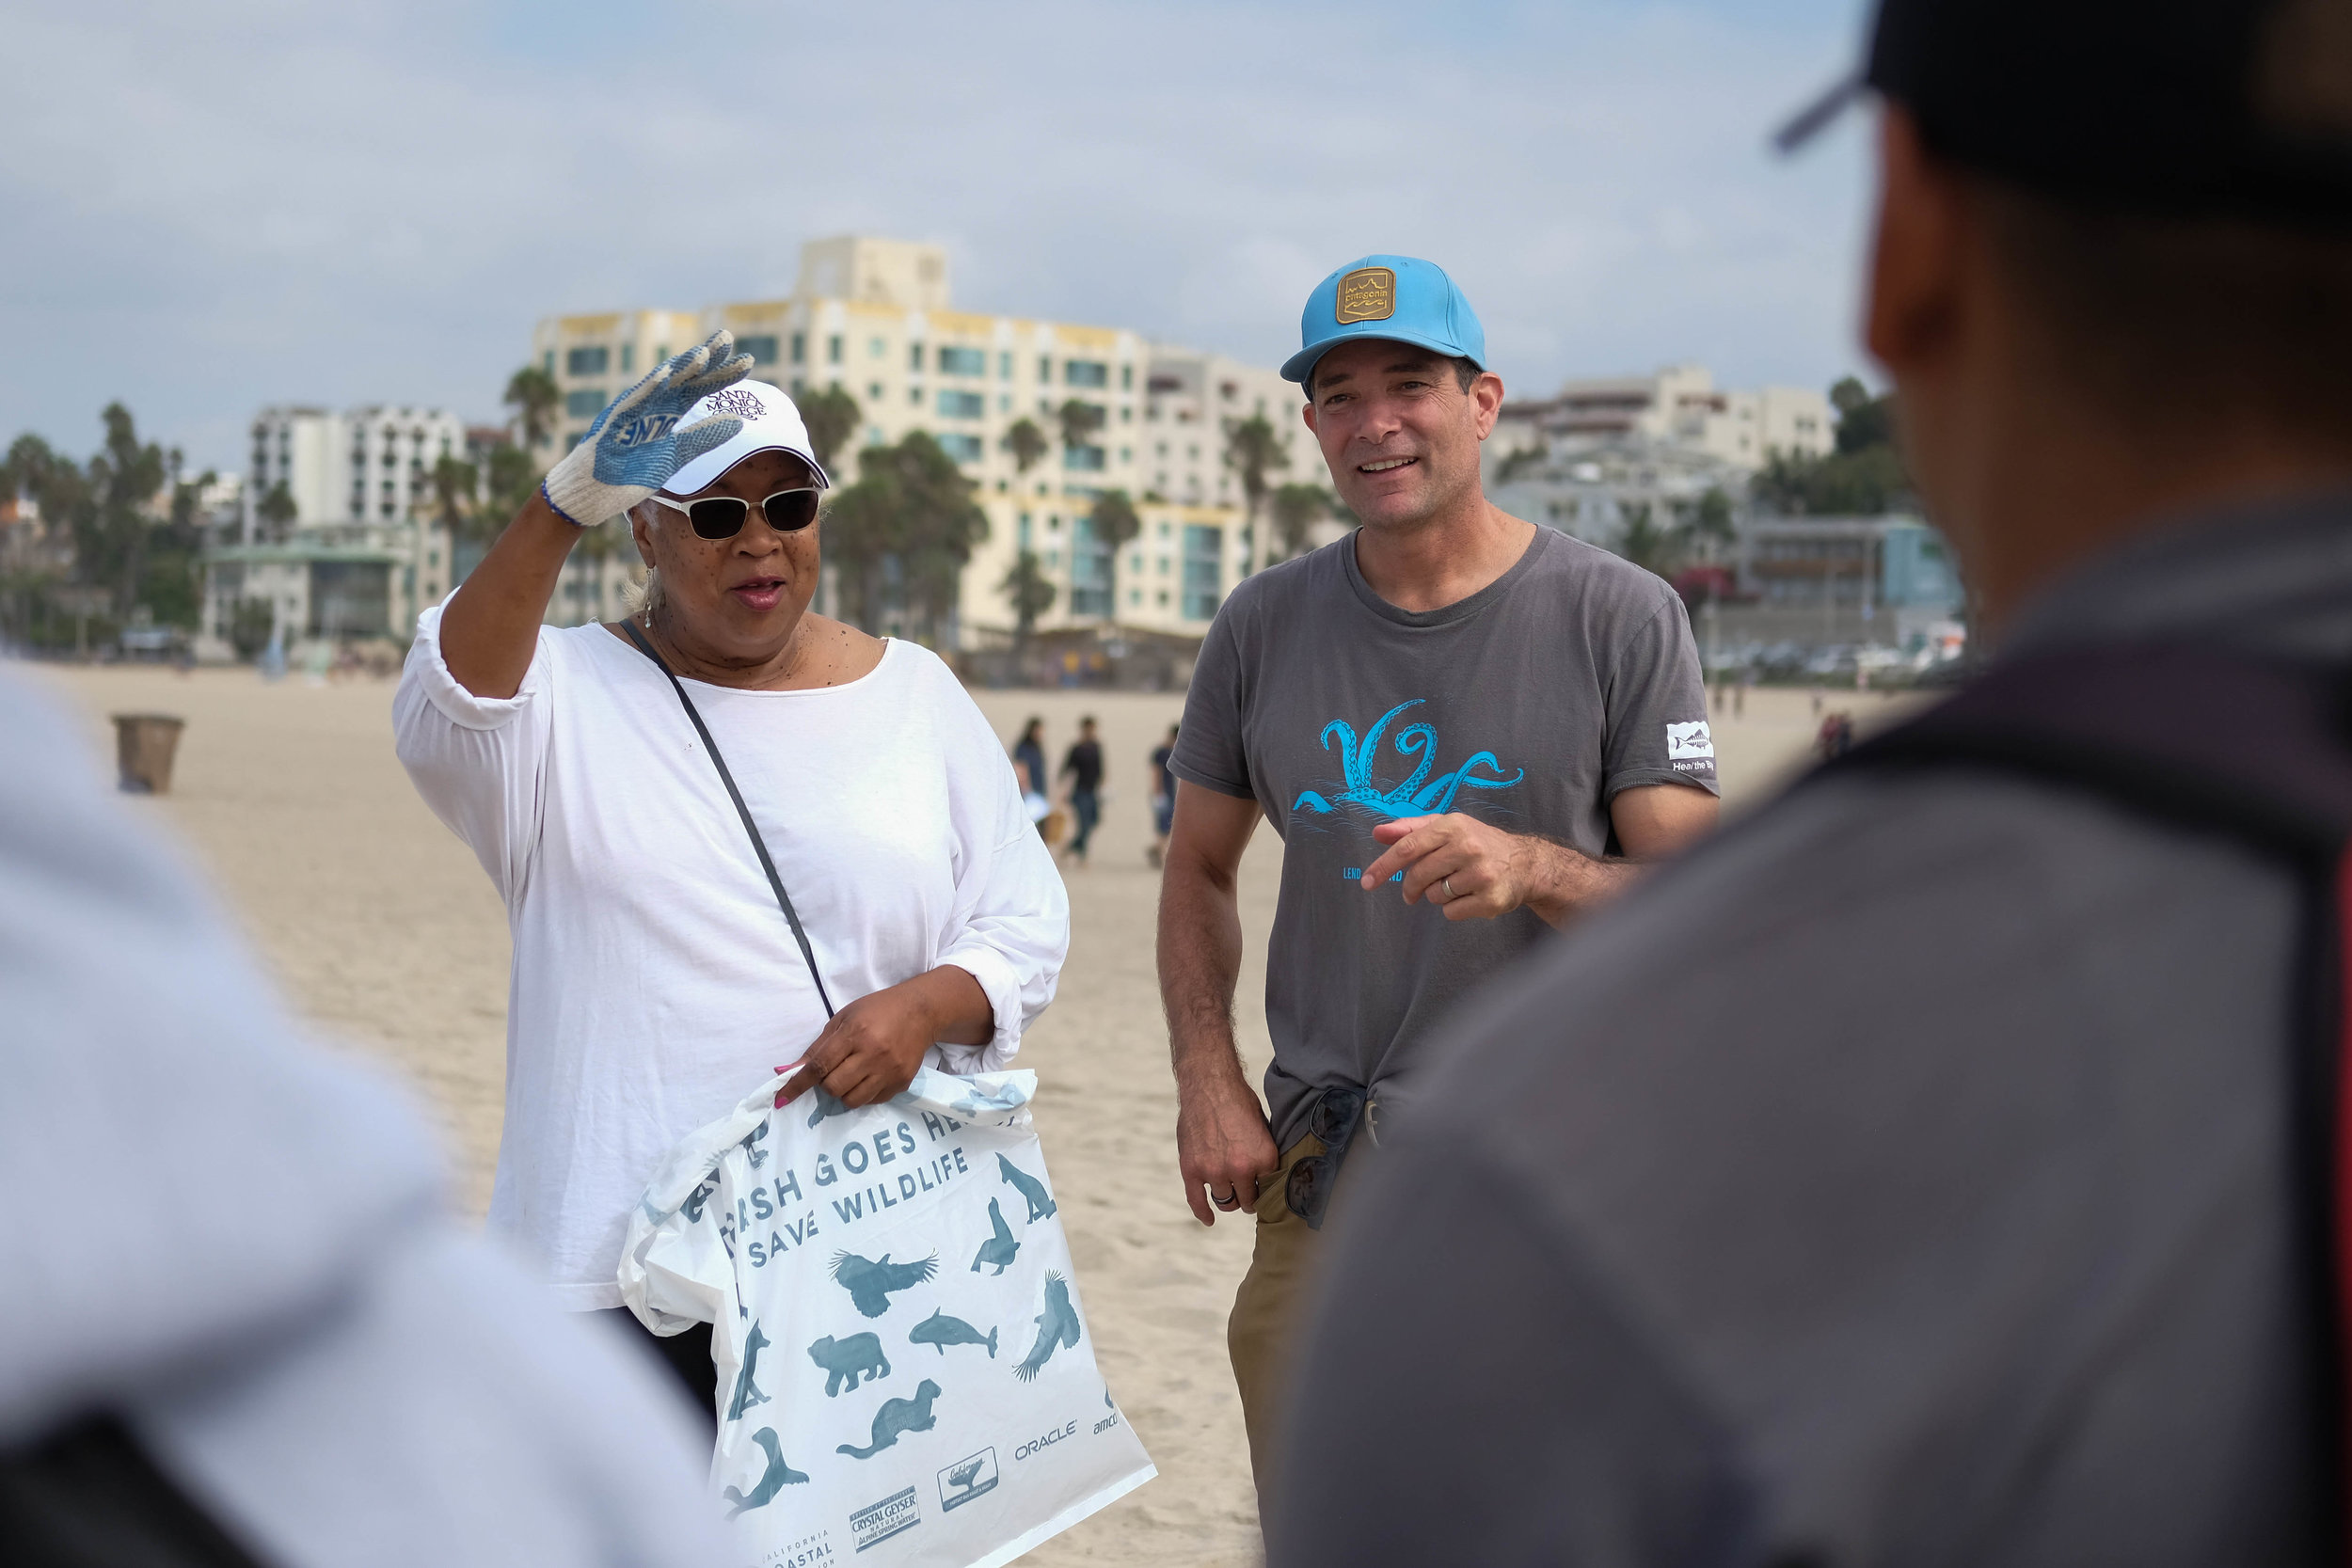 Santa Monica College President, Kathryn Jeffery and Santa Monica College Sustainability Manager Ferris Kawar talking to kids participating in Heal the Bay in  Santa Monica, CALIF on September 16th, 2017.